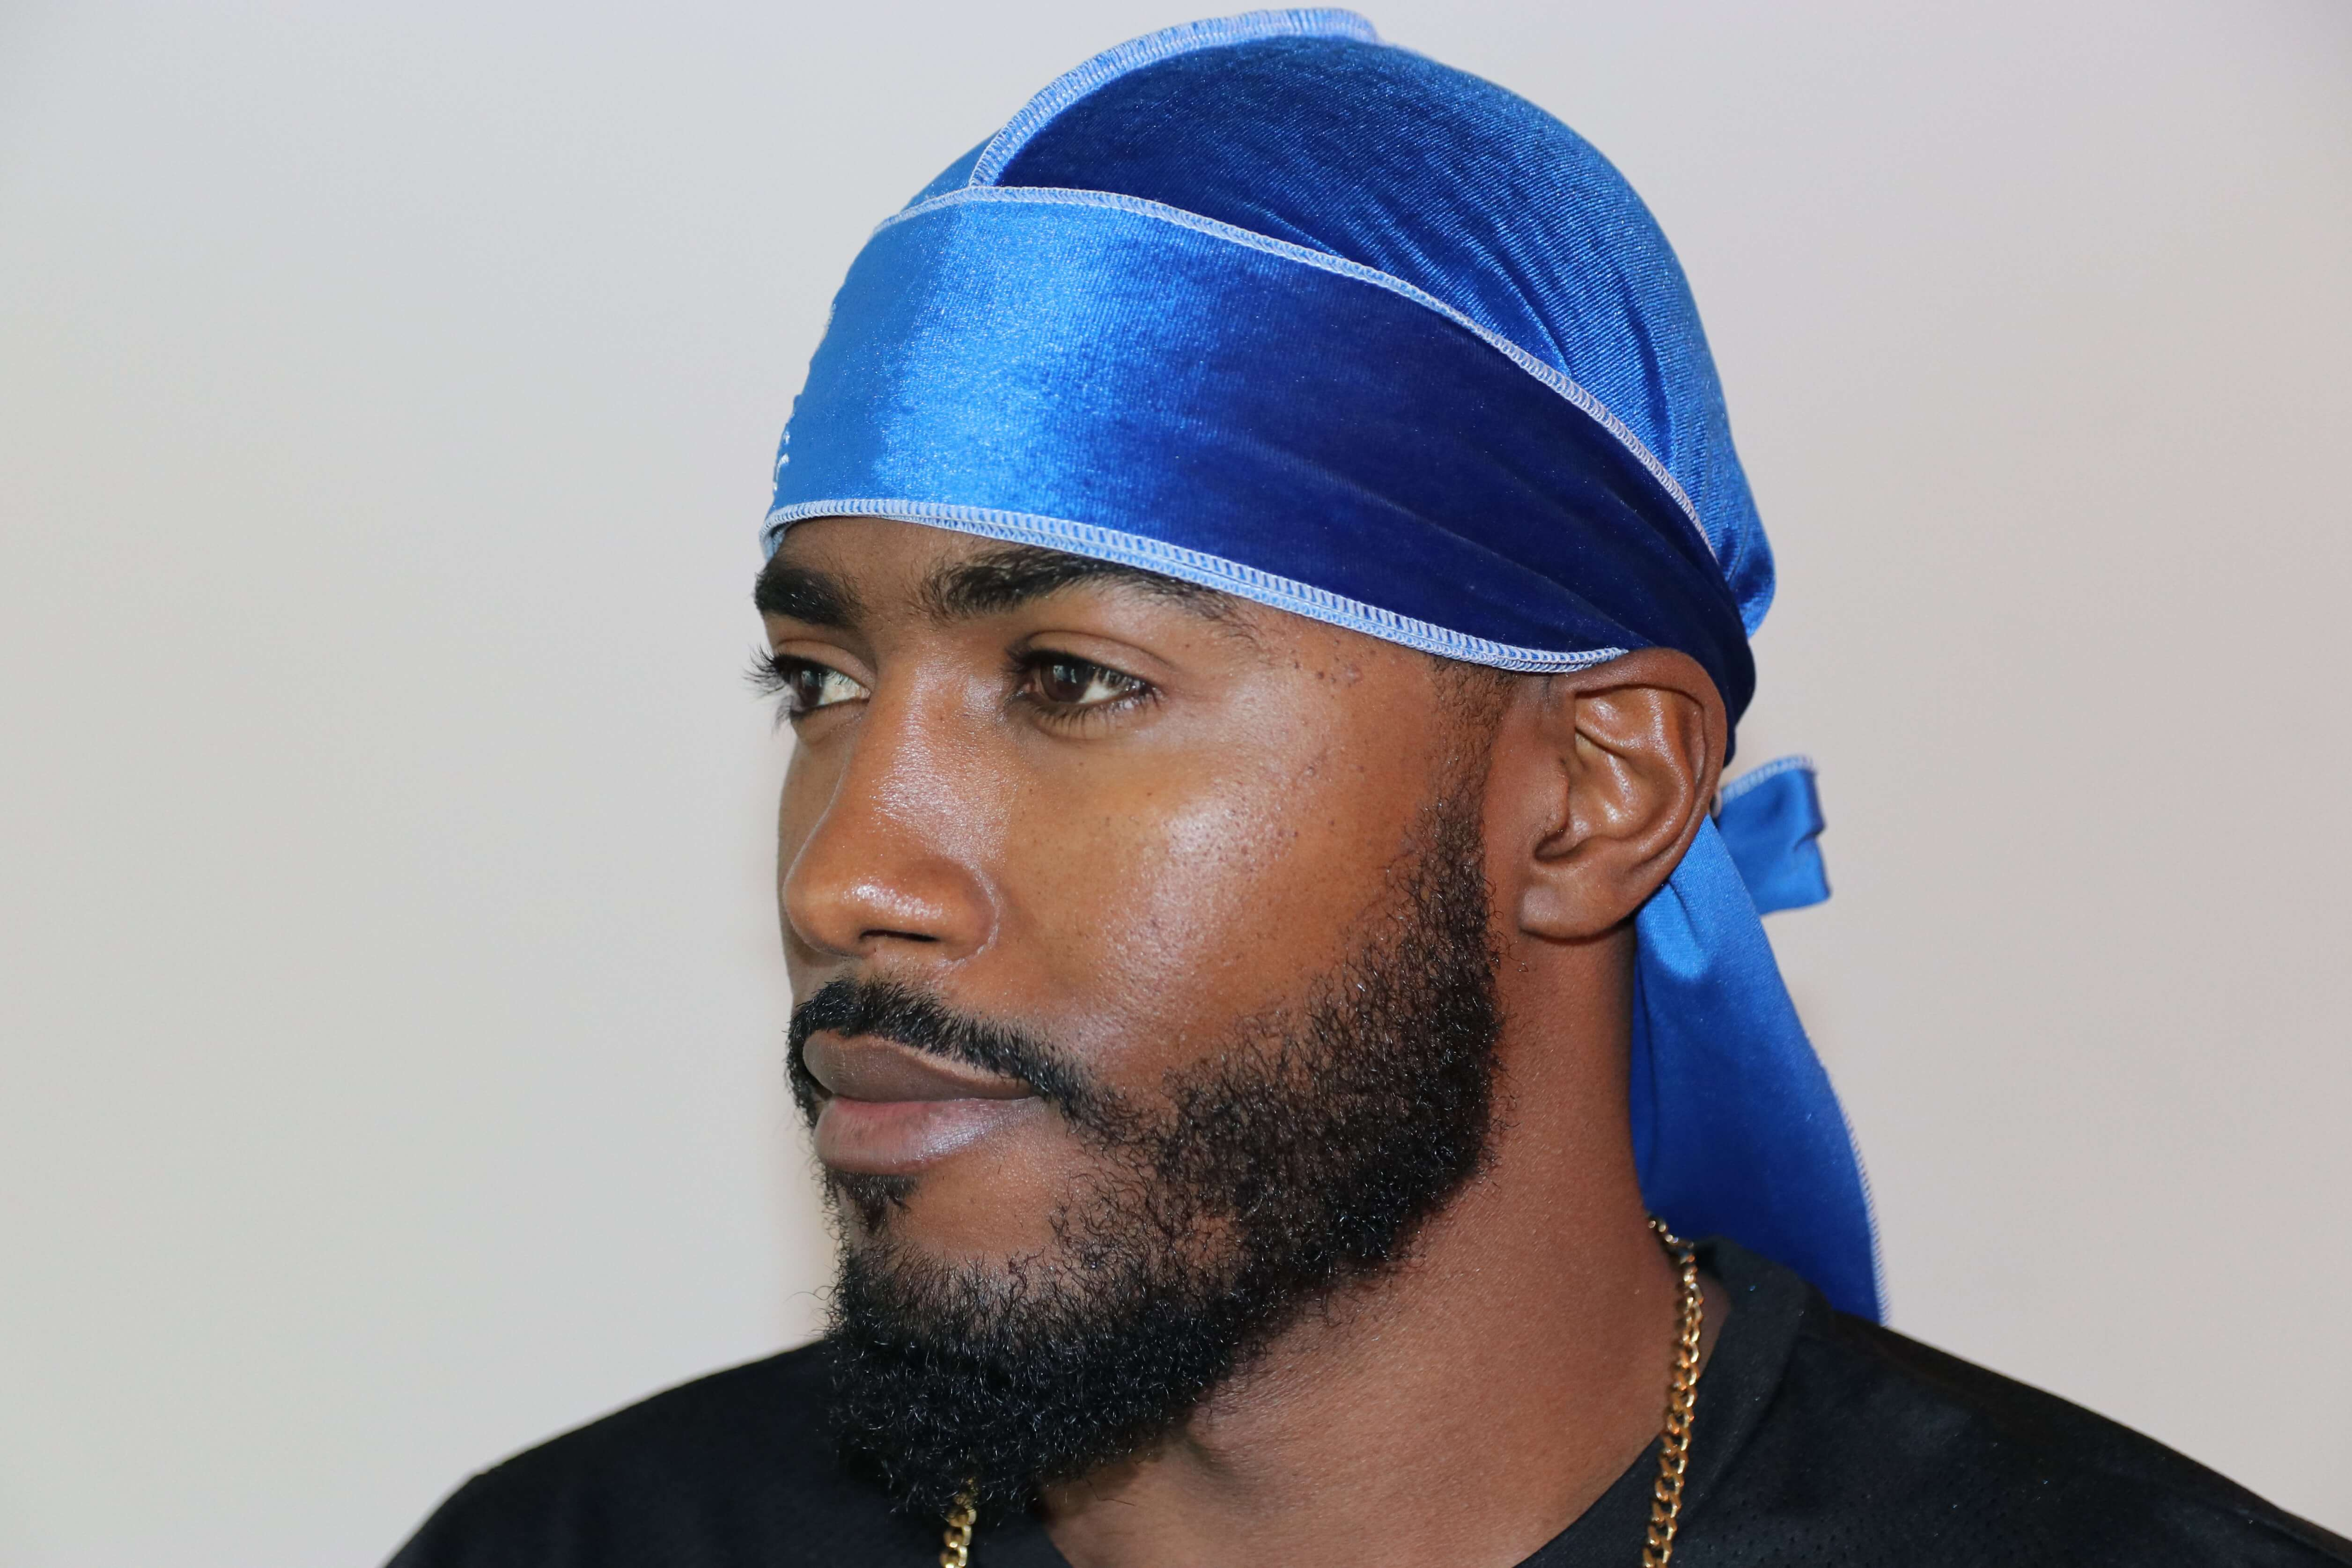 Royal Blue 3WP Velvet Durag white stitching